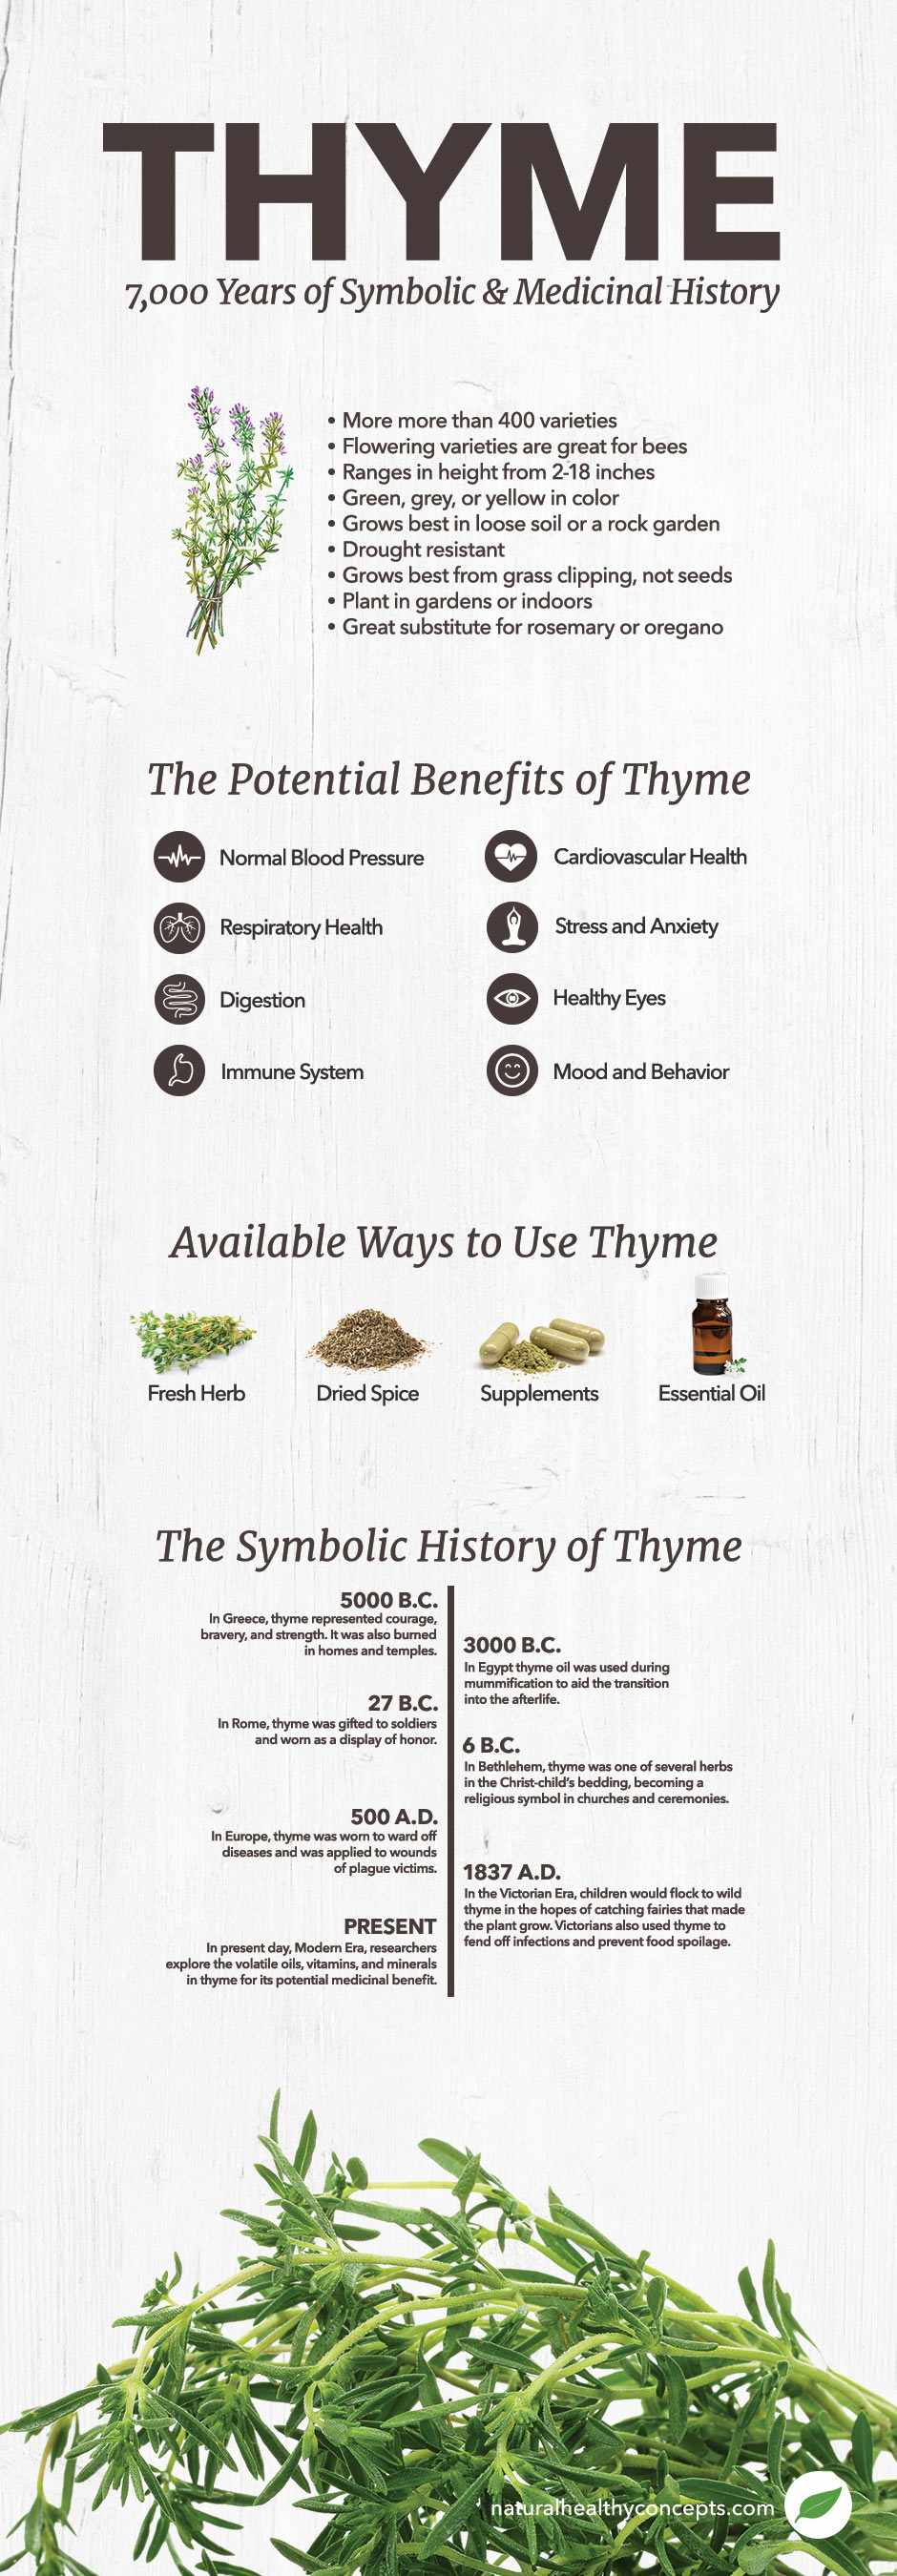 thyme infographic